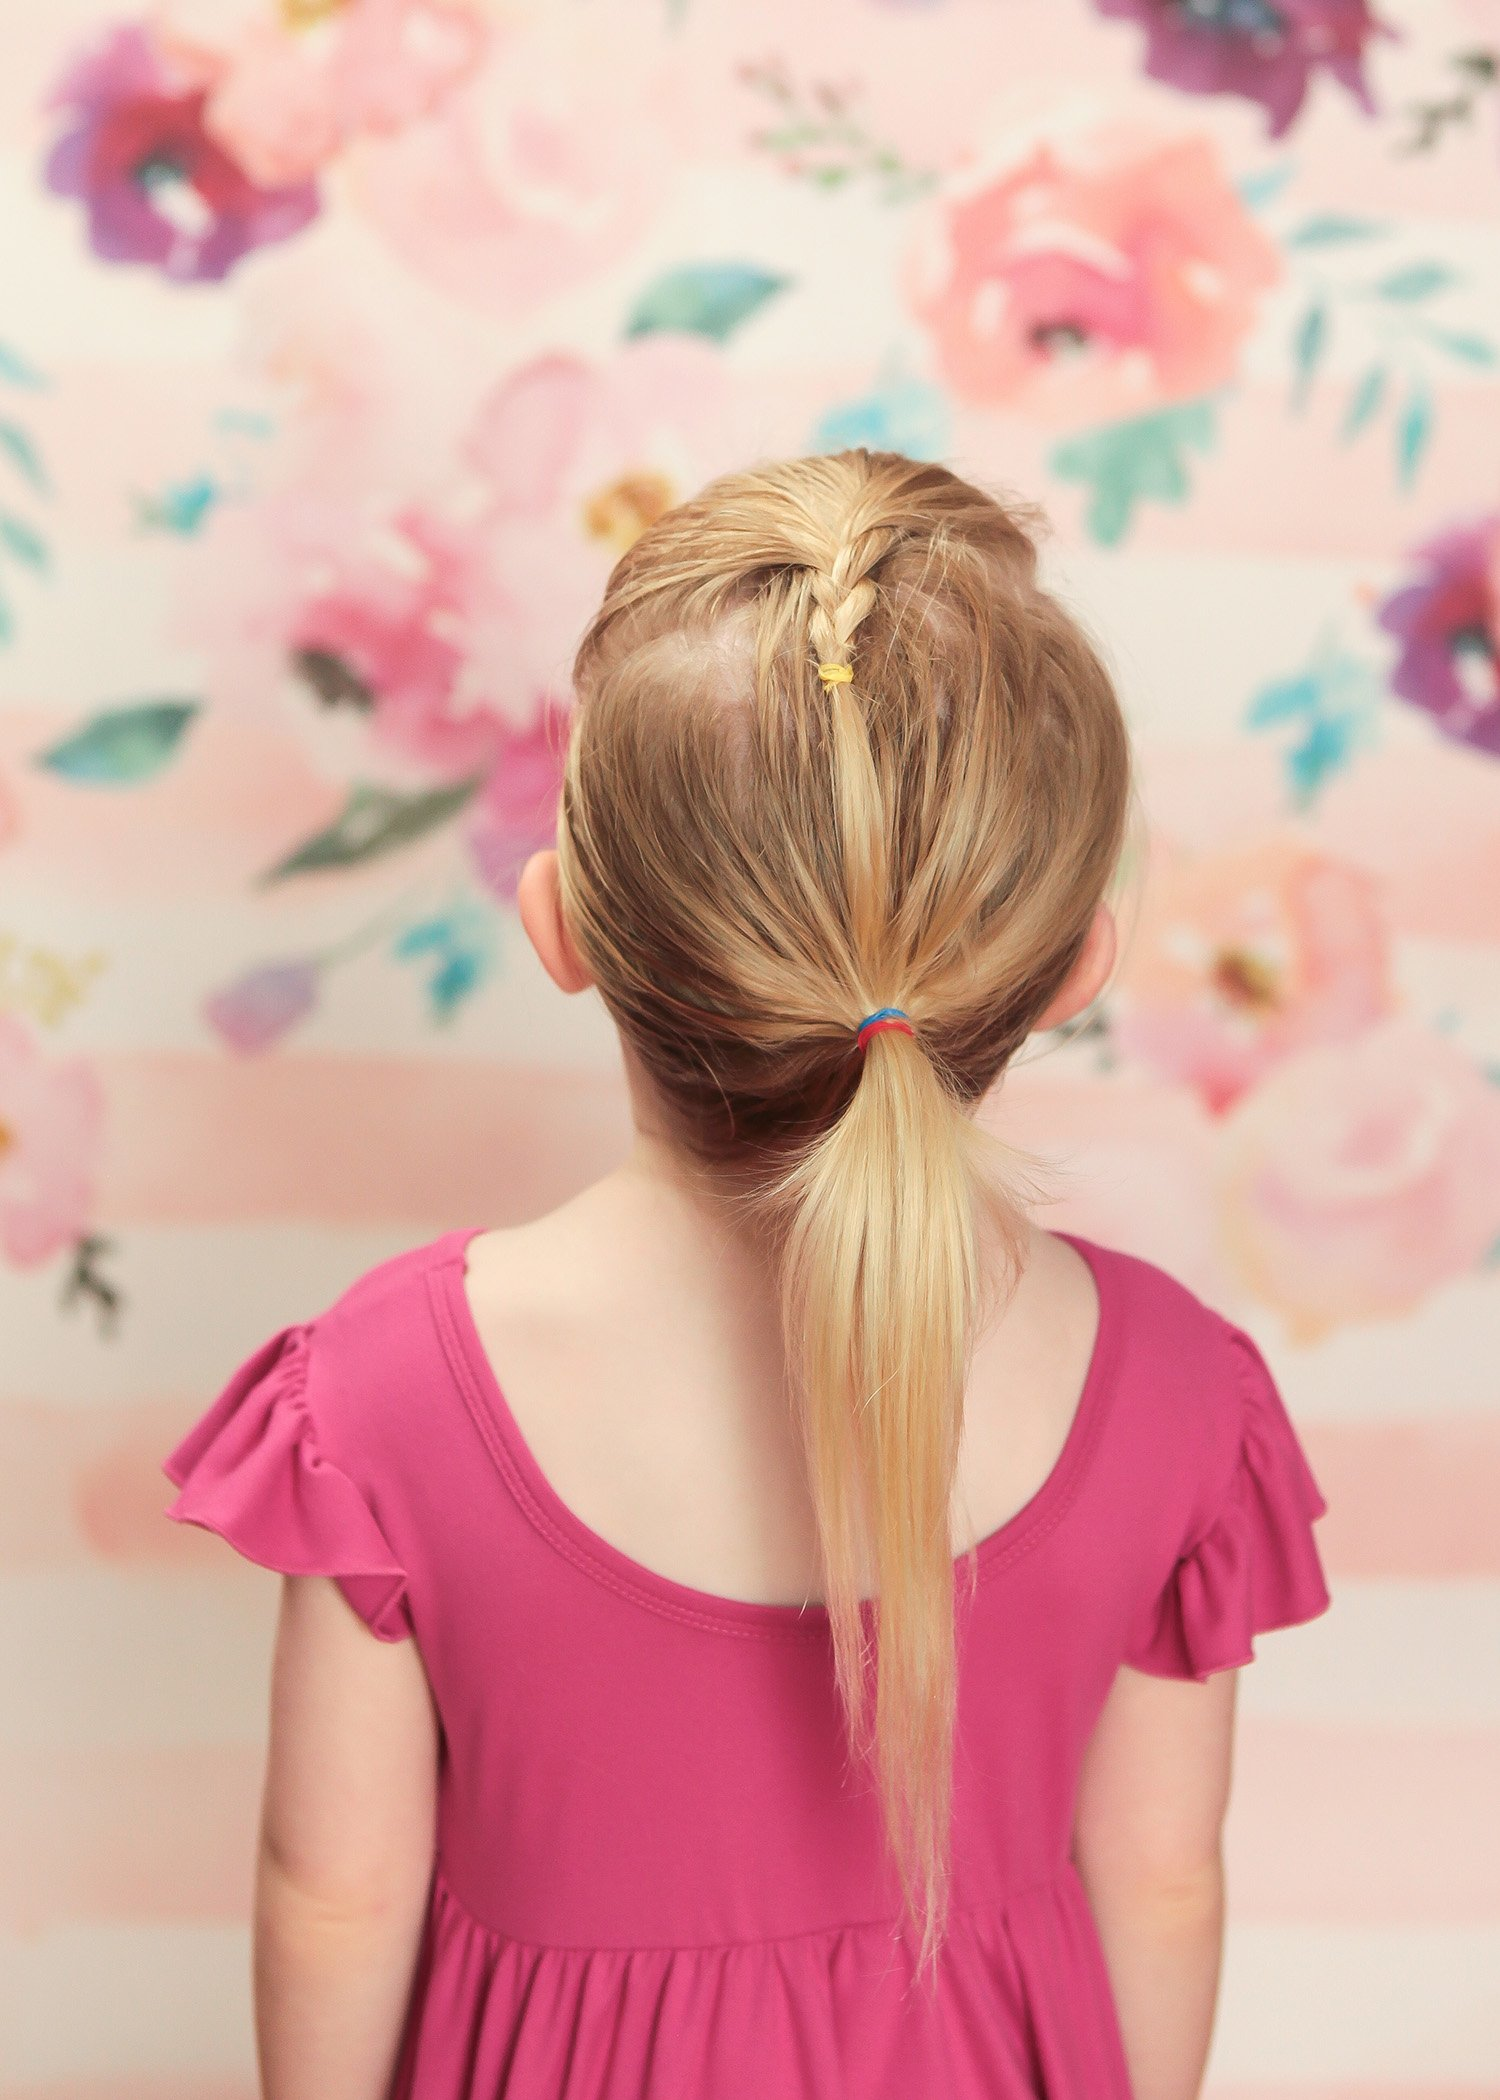 Toddler Hairstyles: This braided ponytail takes less than 3 minutes!